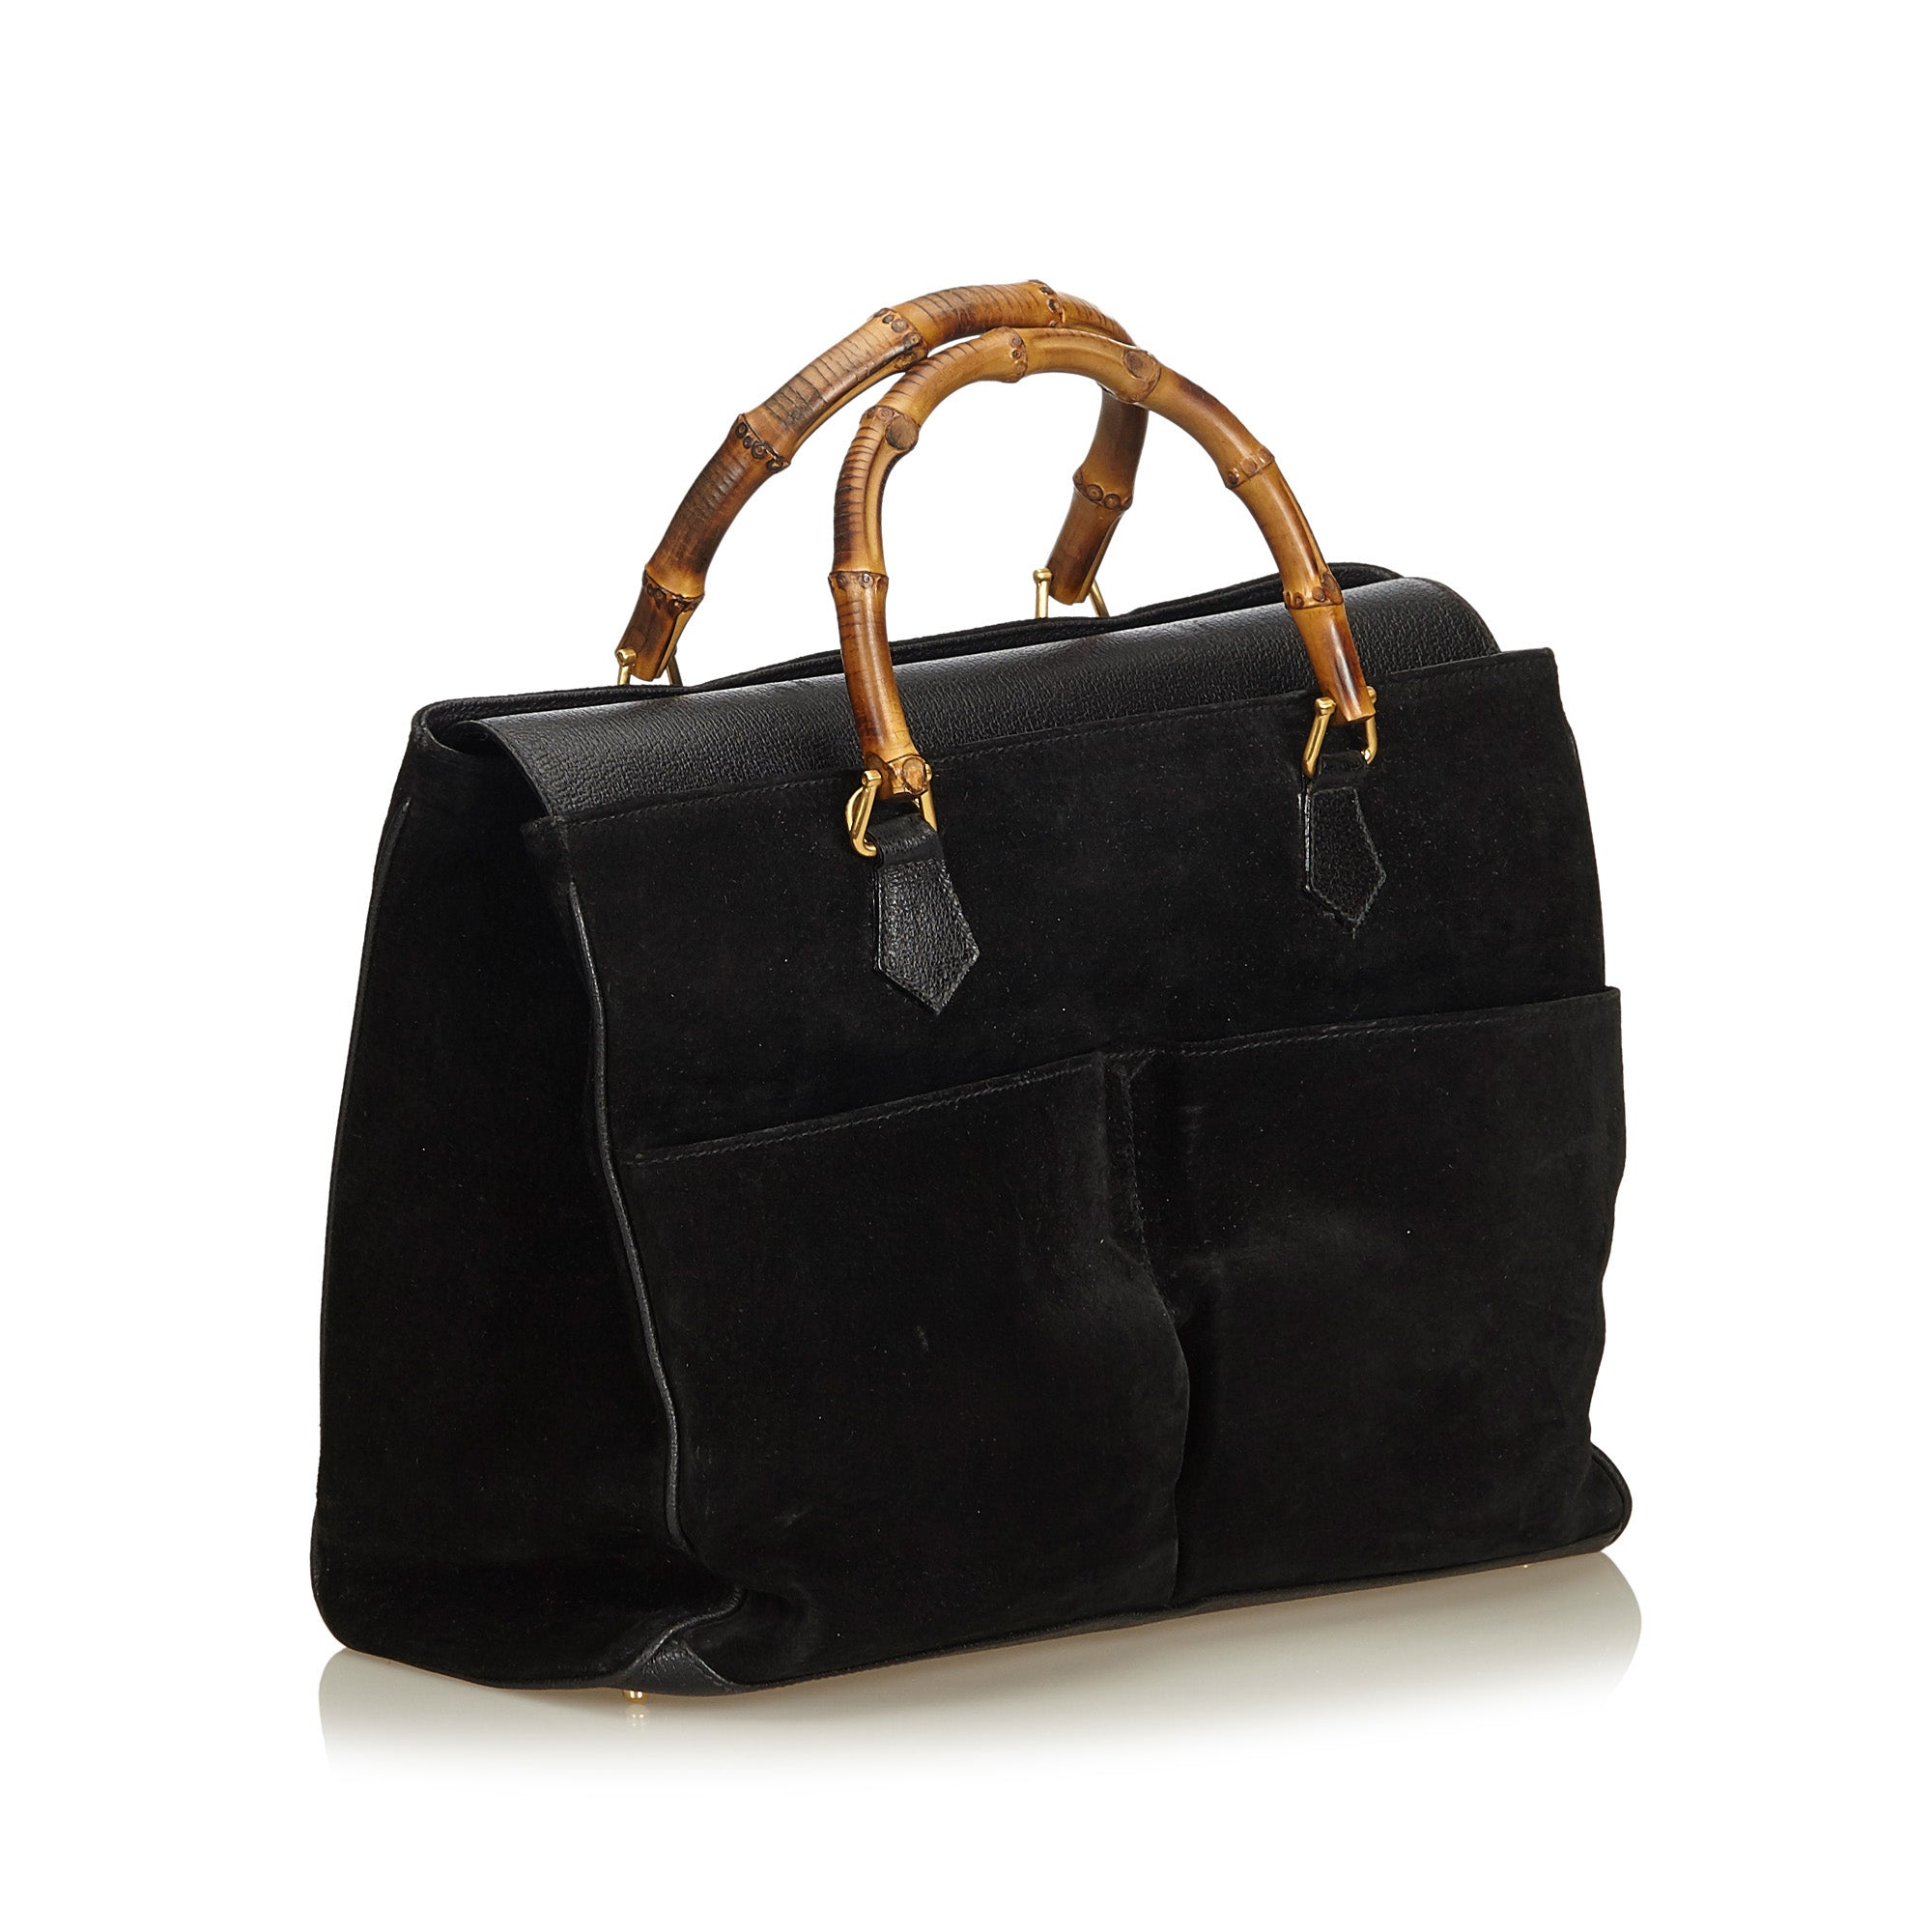 8a8c08e5a2d0 ... GUCCI BAMBOO SUEDE TOP HANDLE BAG Shop online the best value on  authentic designer used preowned ...